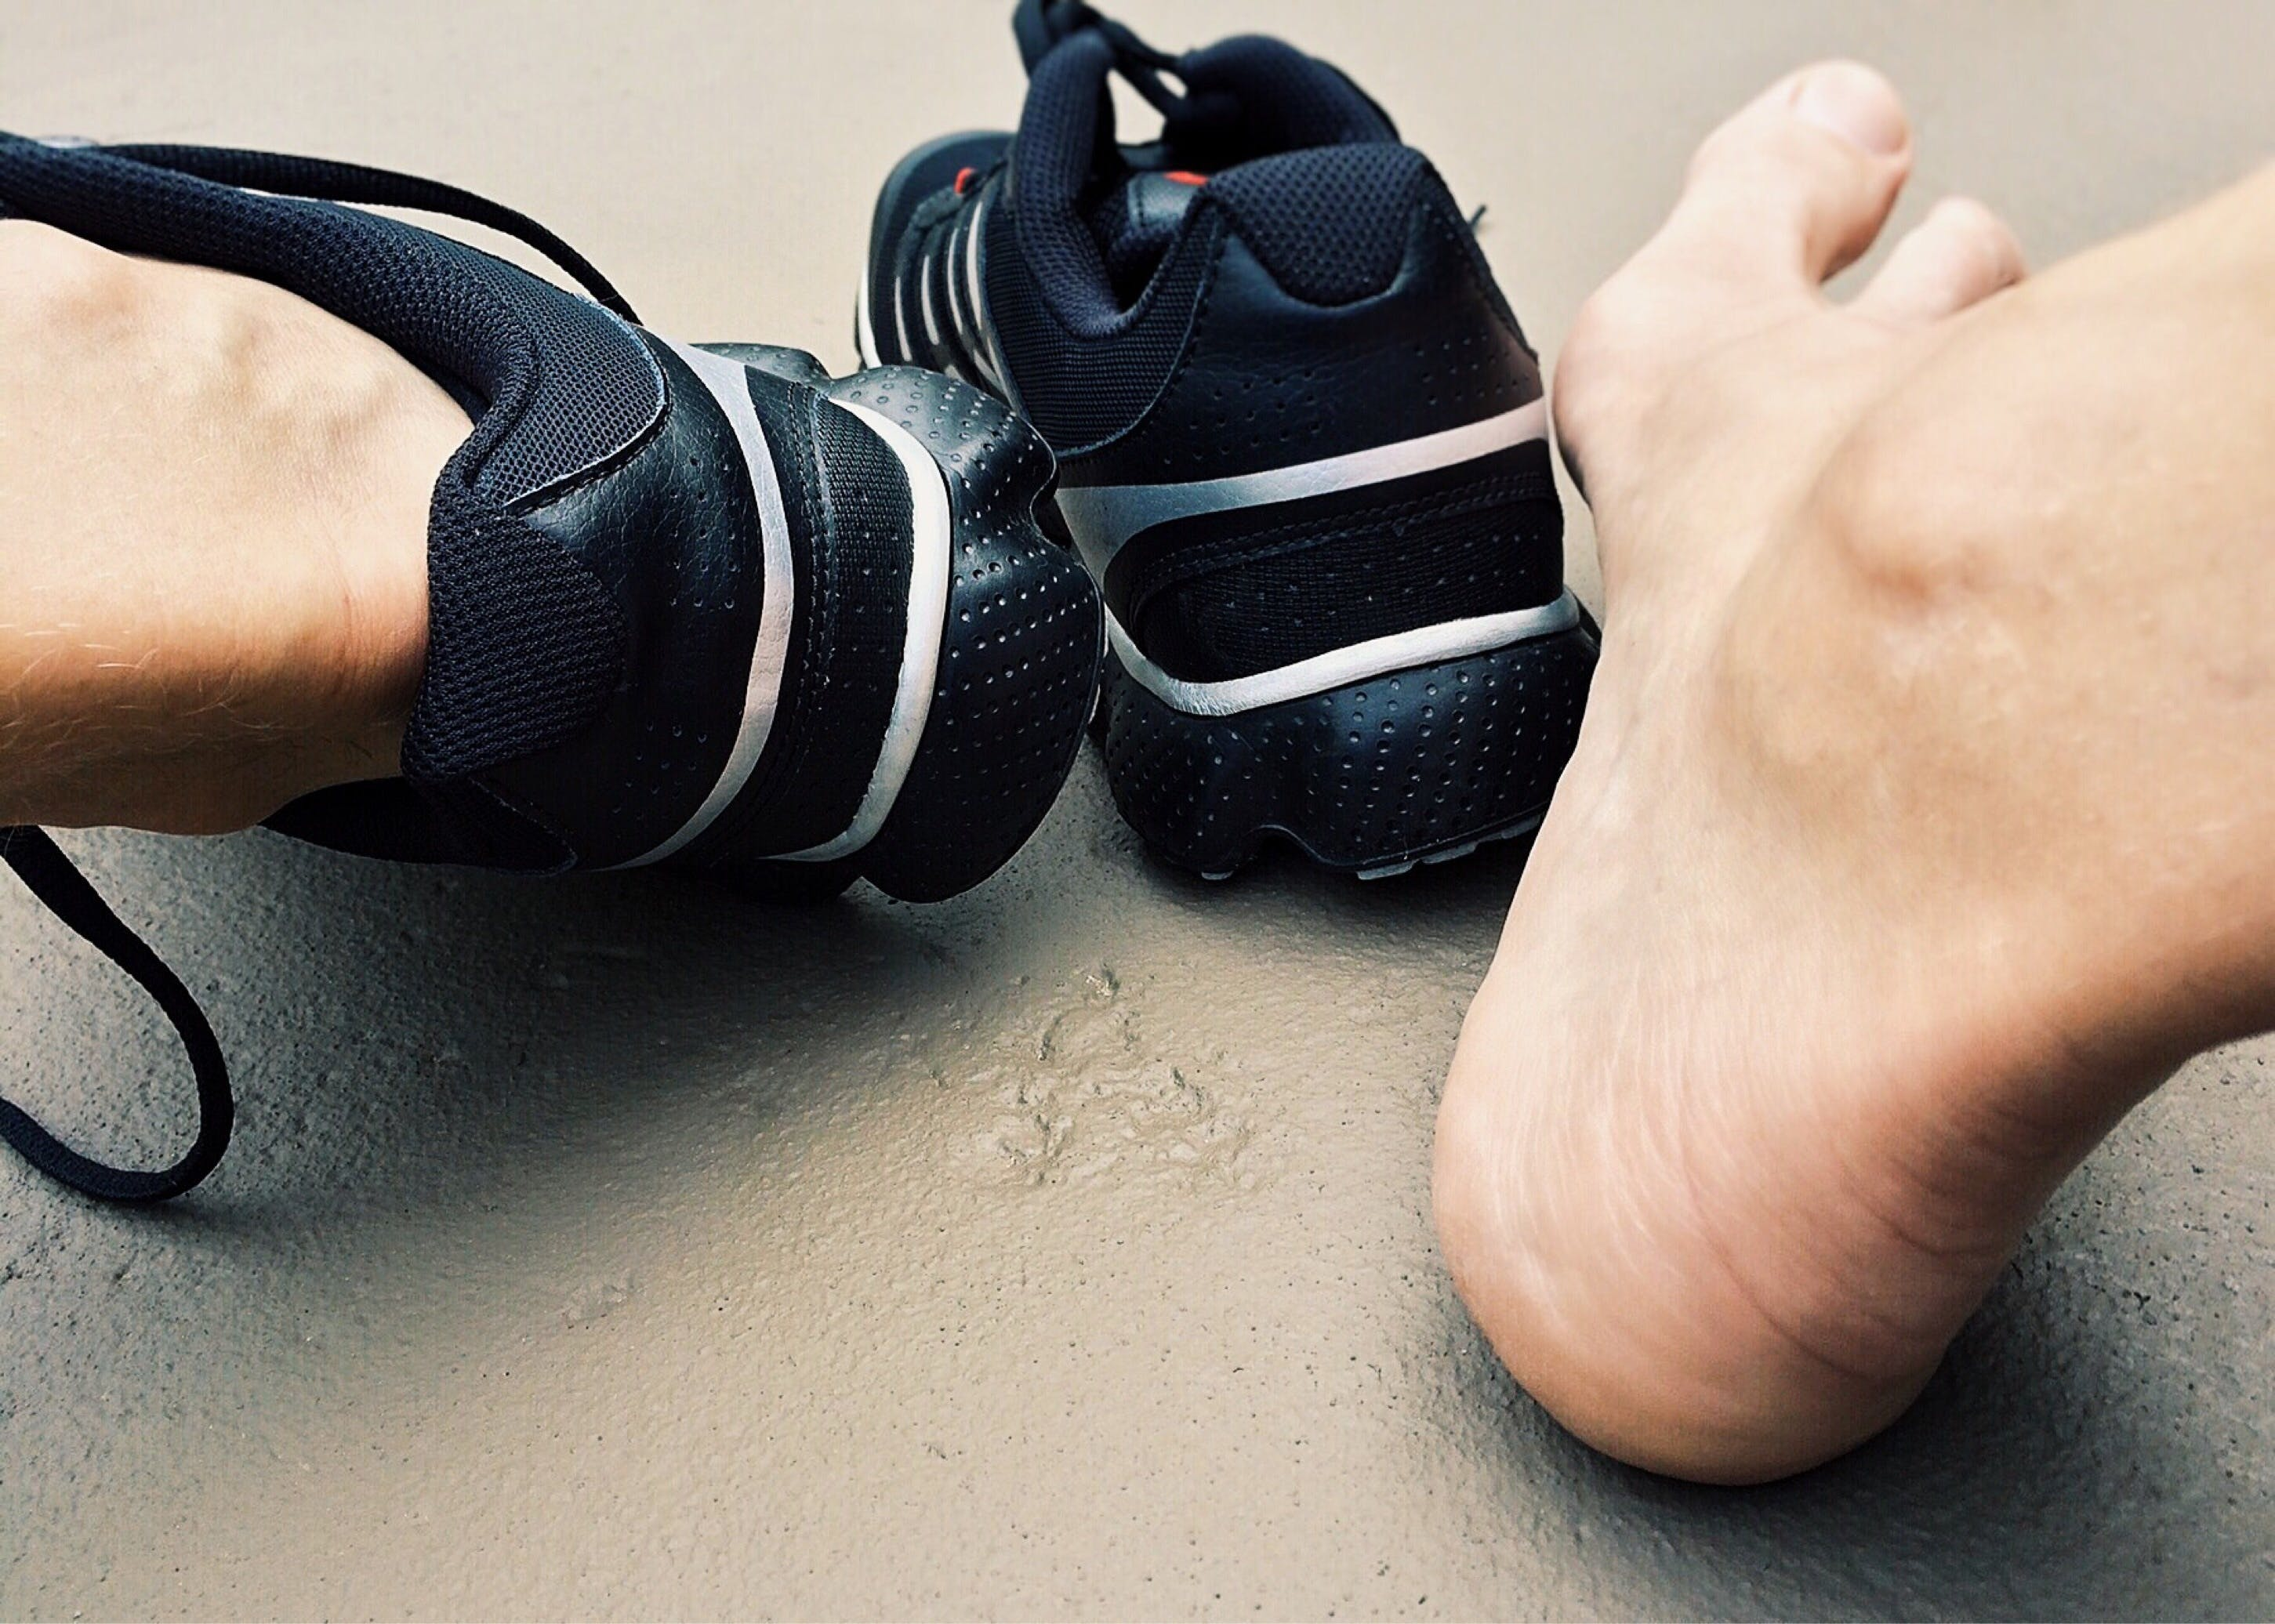 Close-up of Man Wearing Shoes